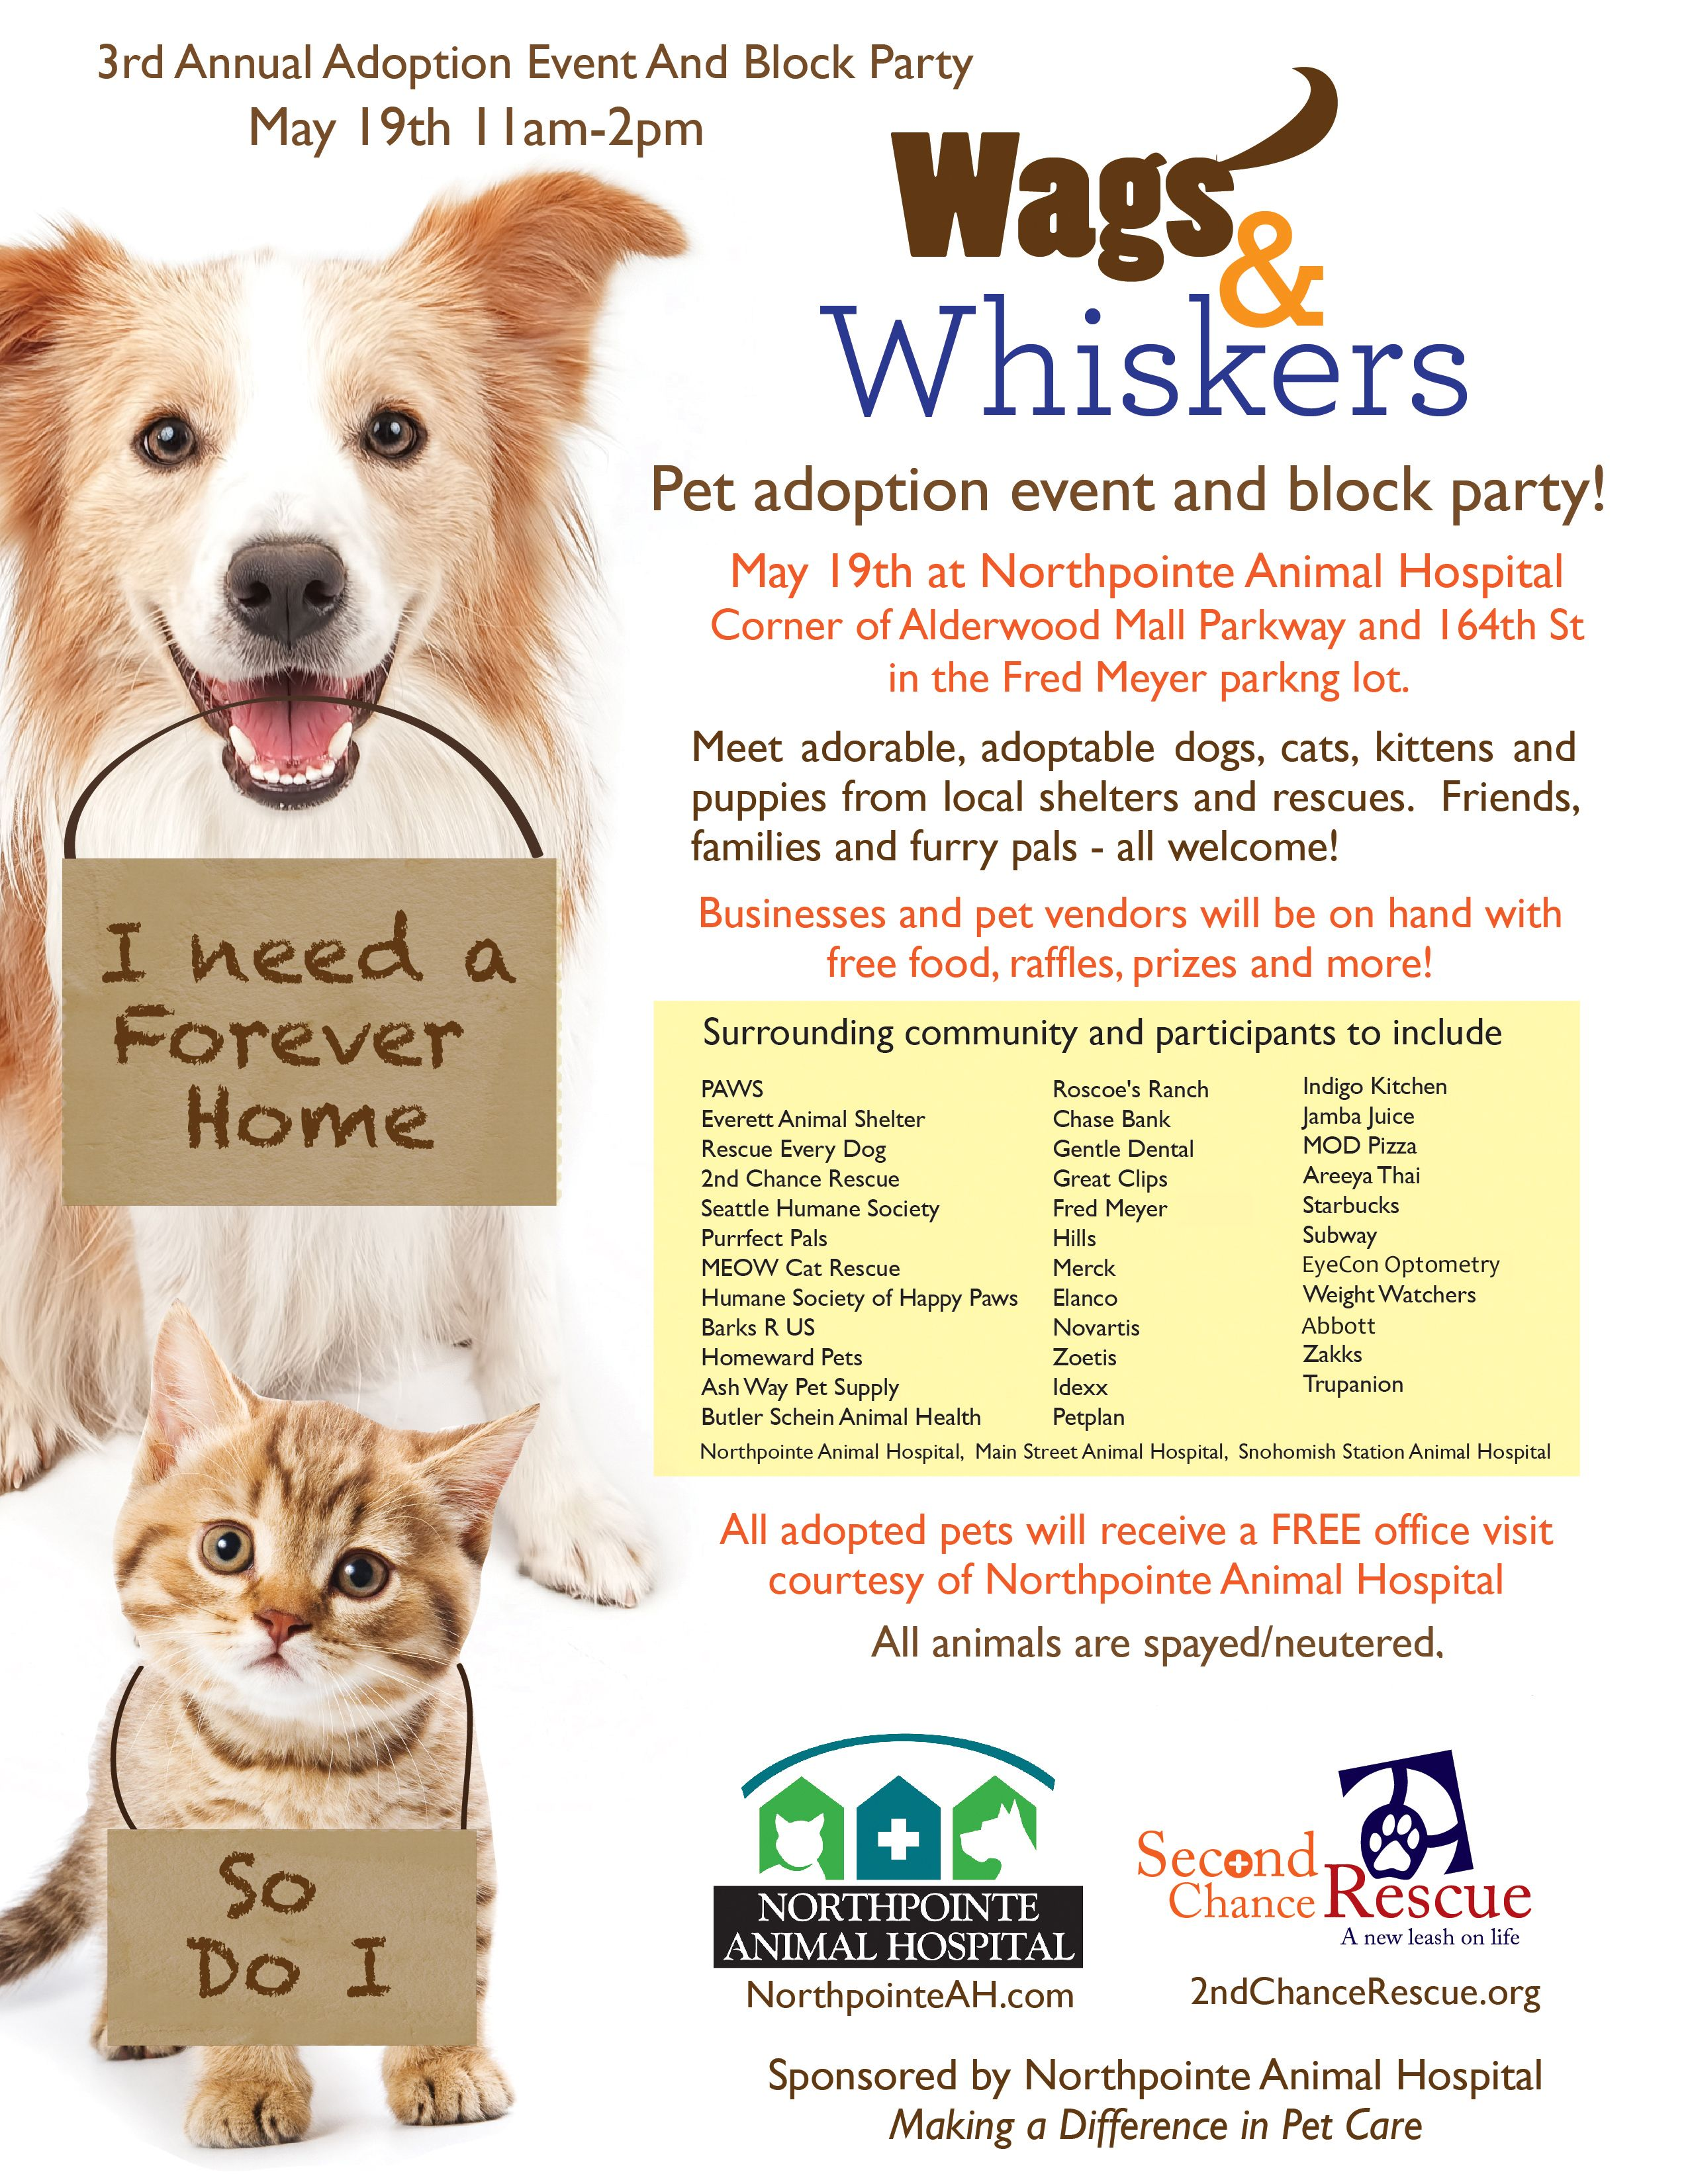 Join Petplan pet insurance at the 3rd Annual Wags and